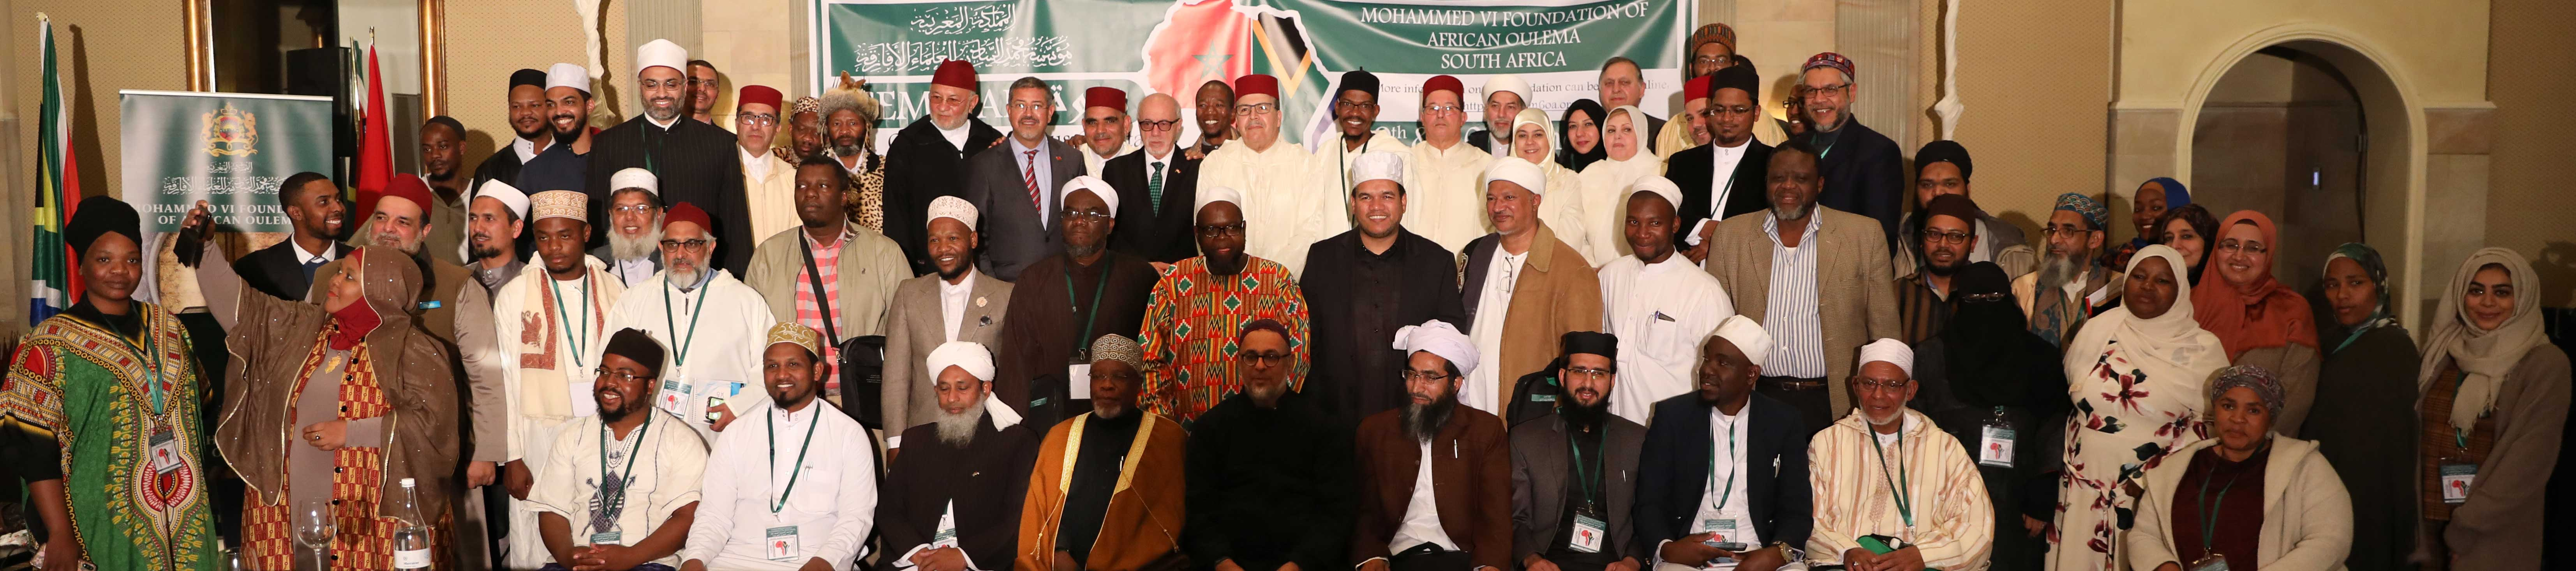 Common Religious Constants: The Foundations of African Identity-South Africa